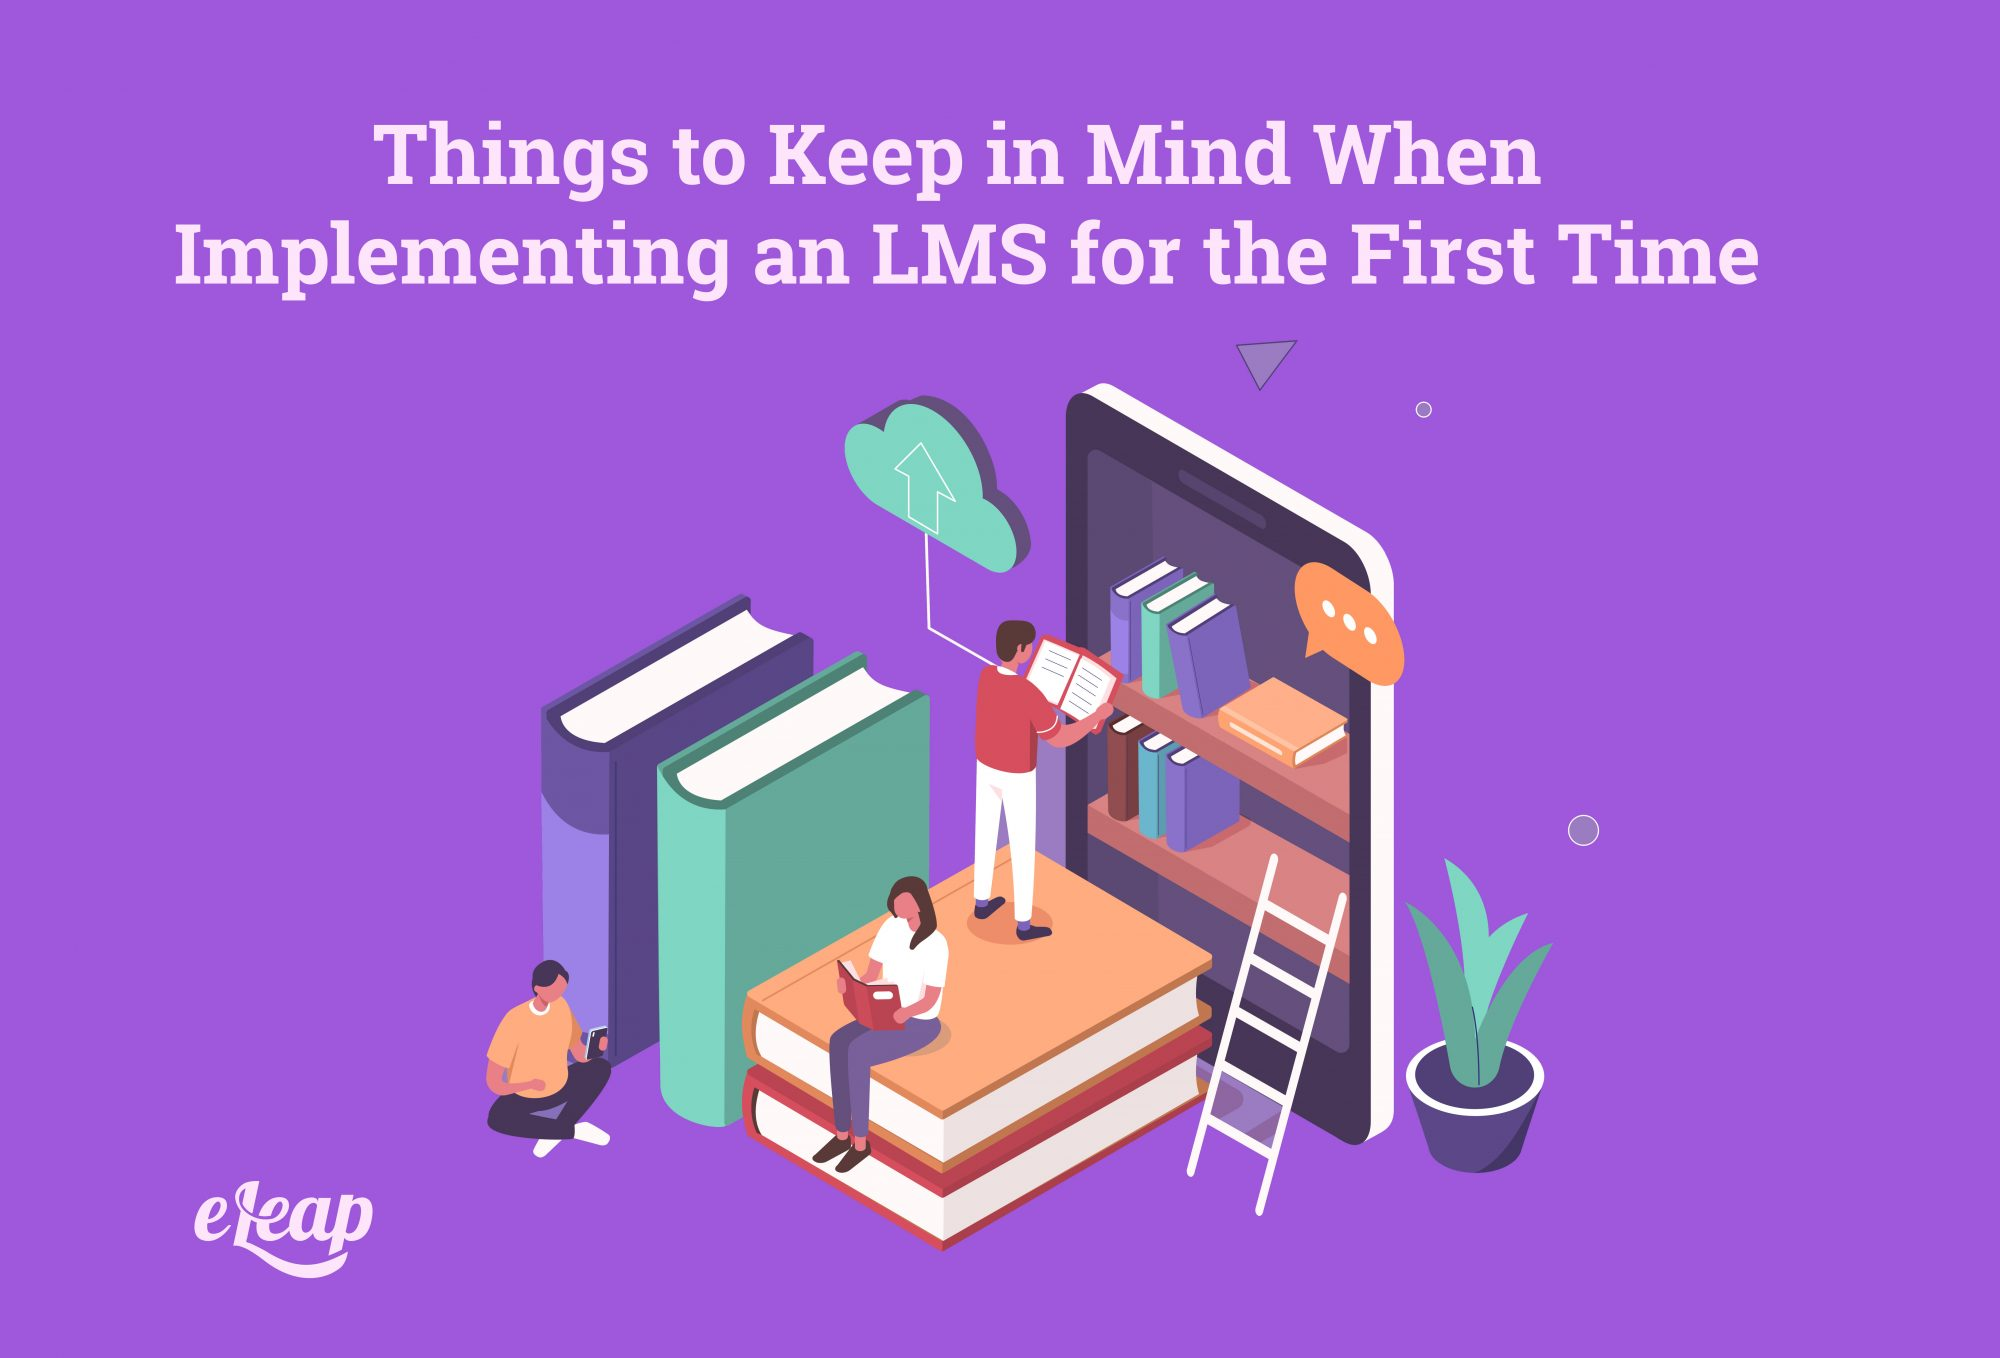 Things to Keep in Mind When Implementing an LMS for the First Time